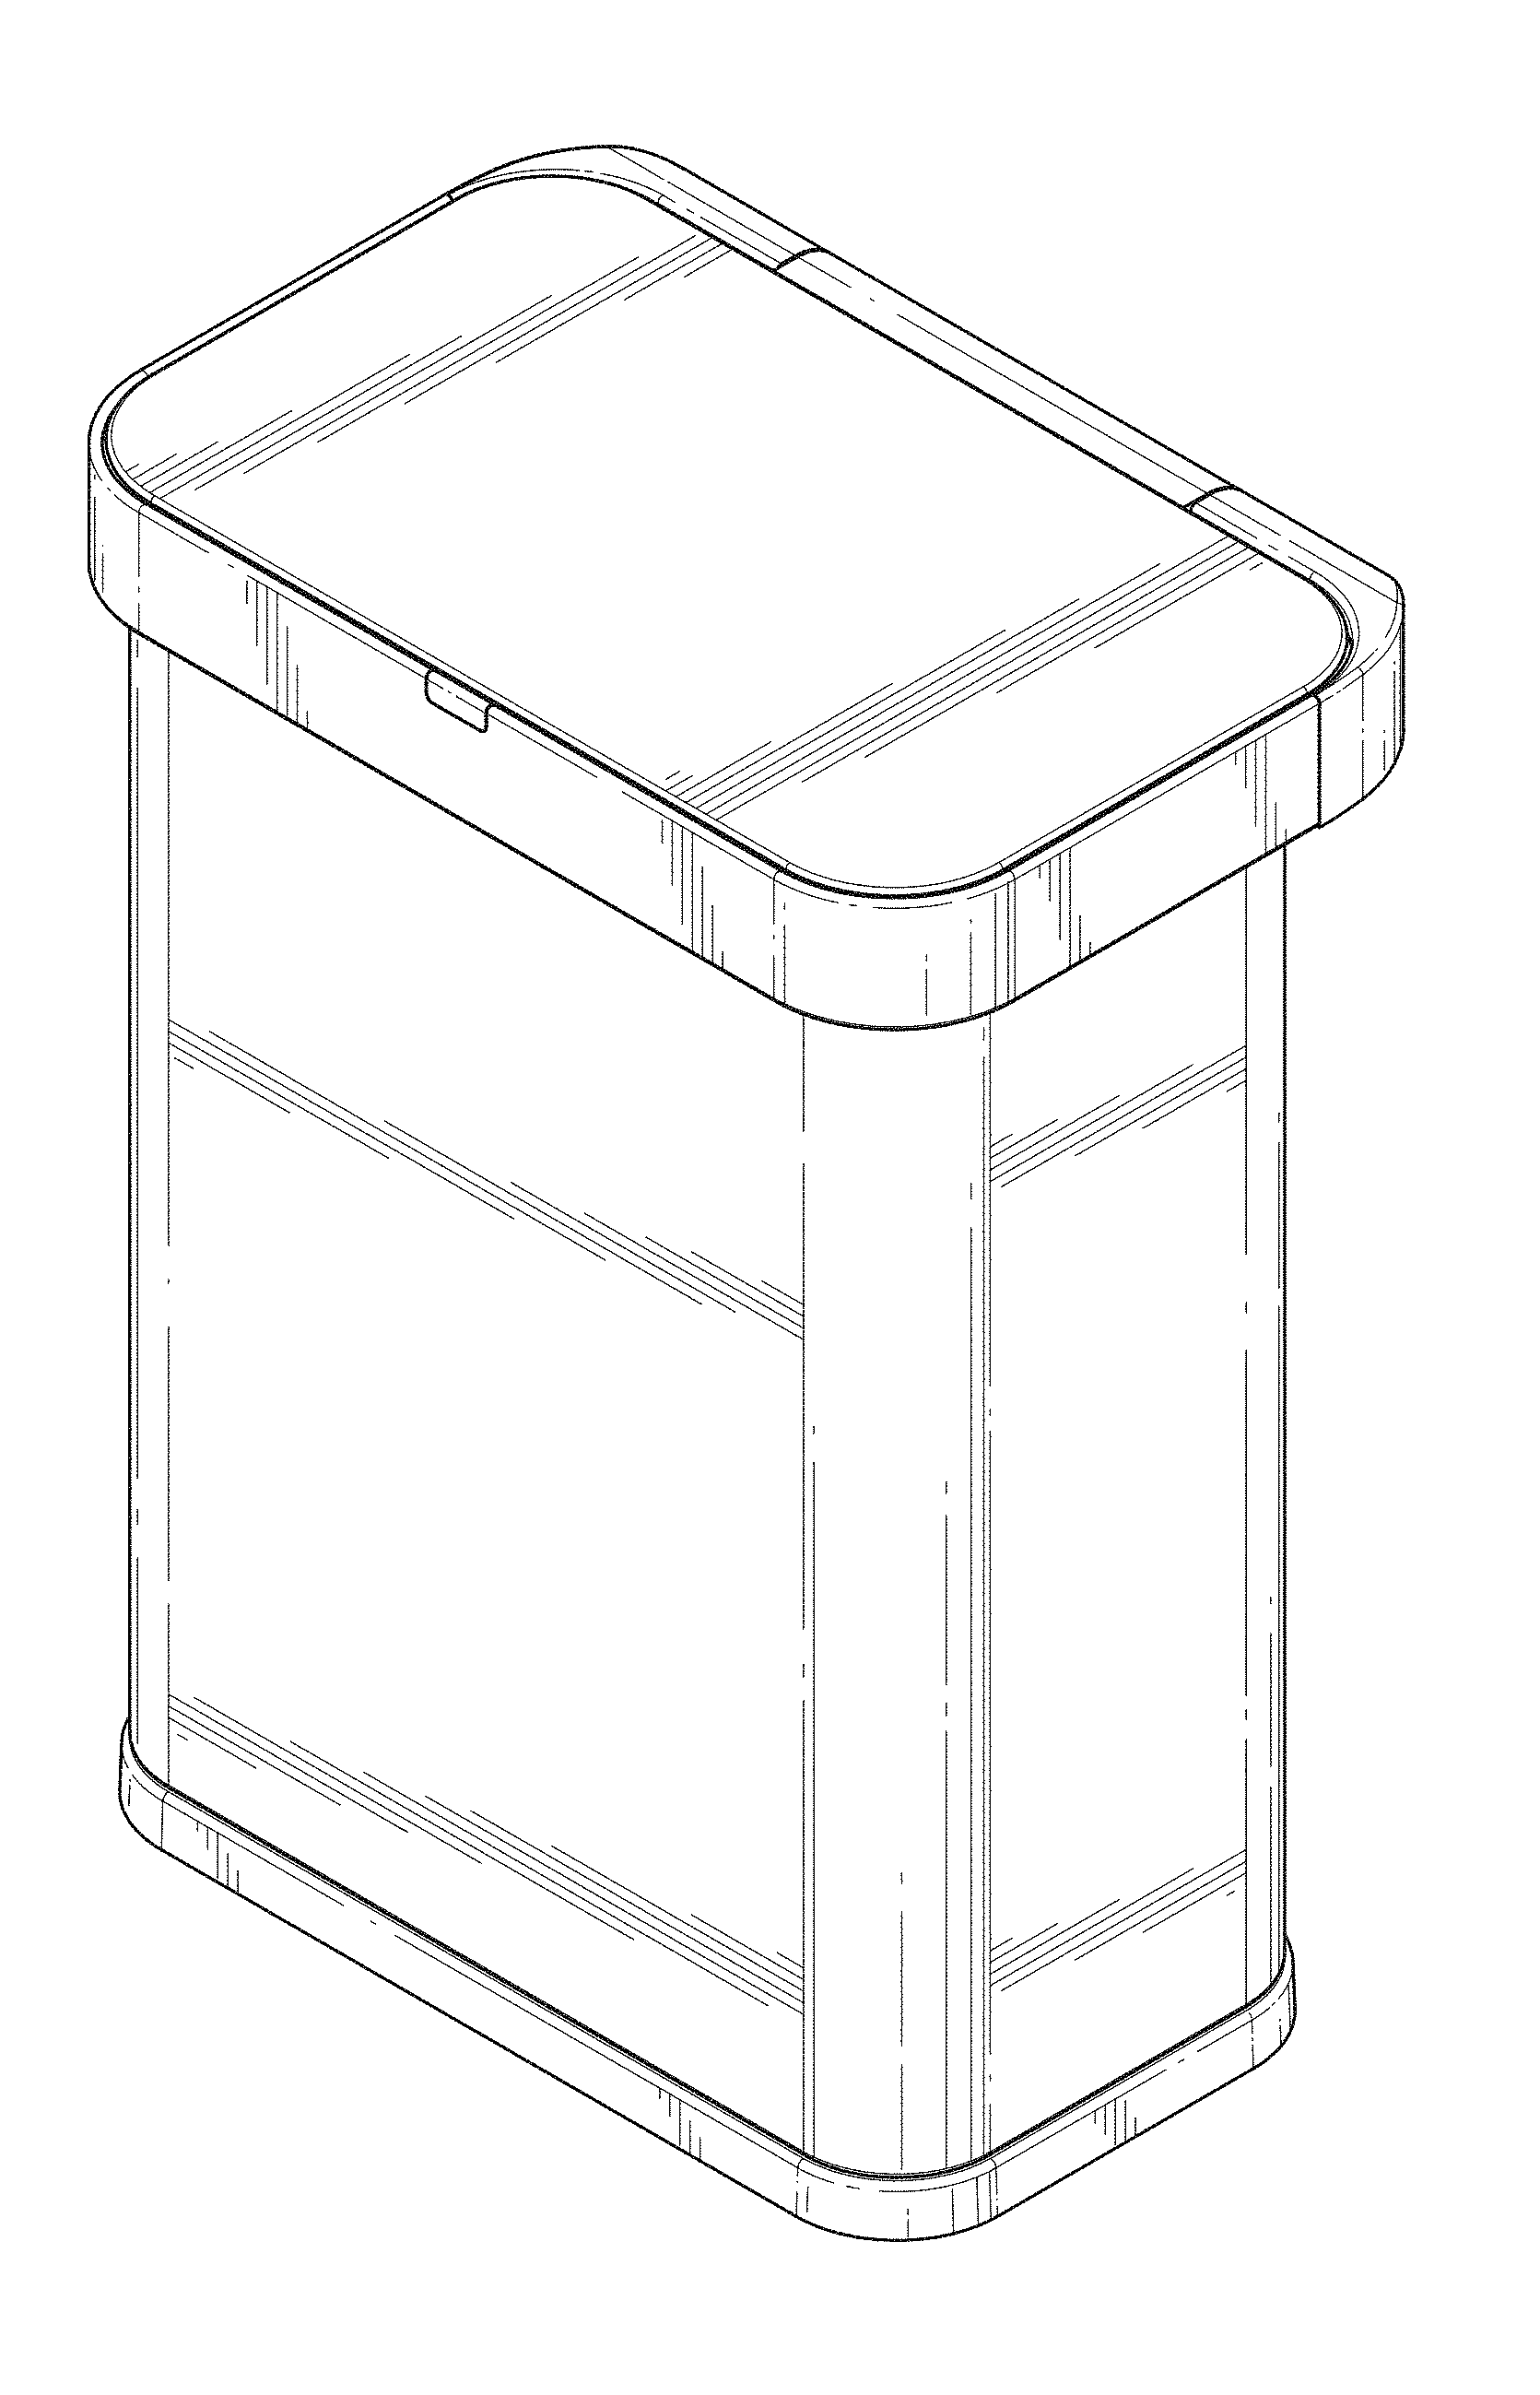 patent drawing contours